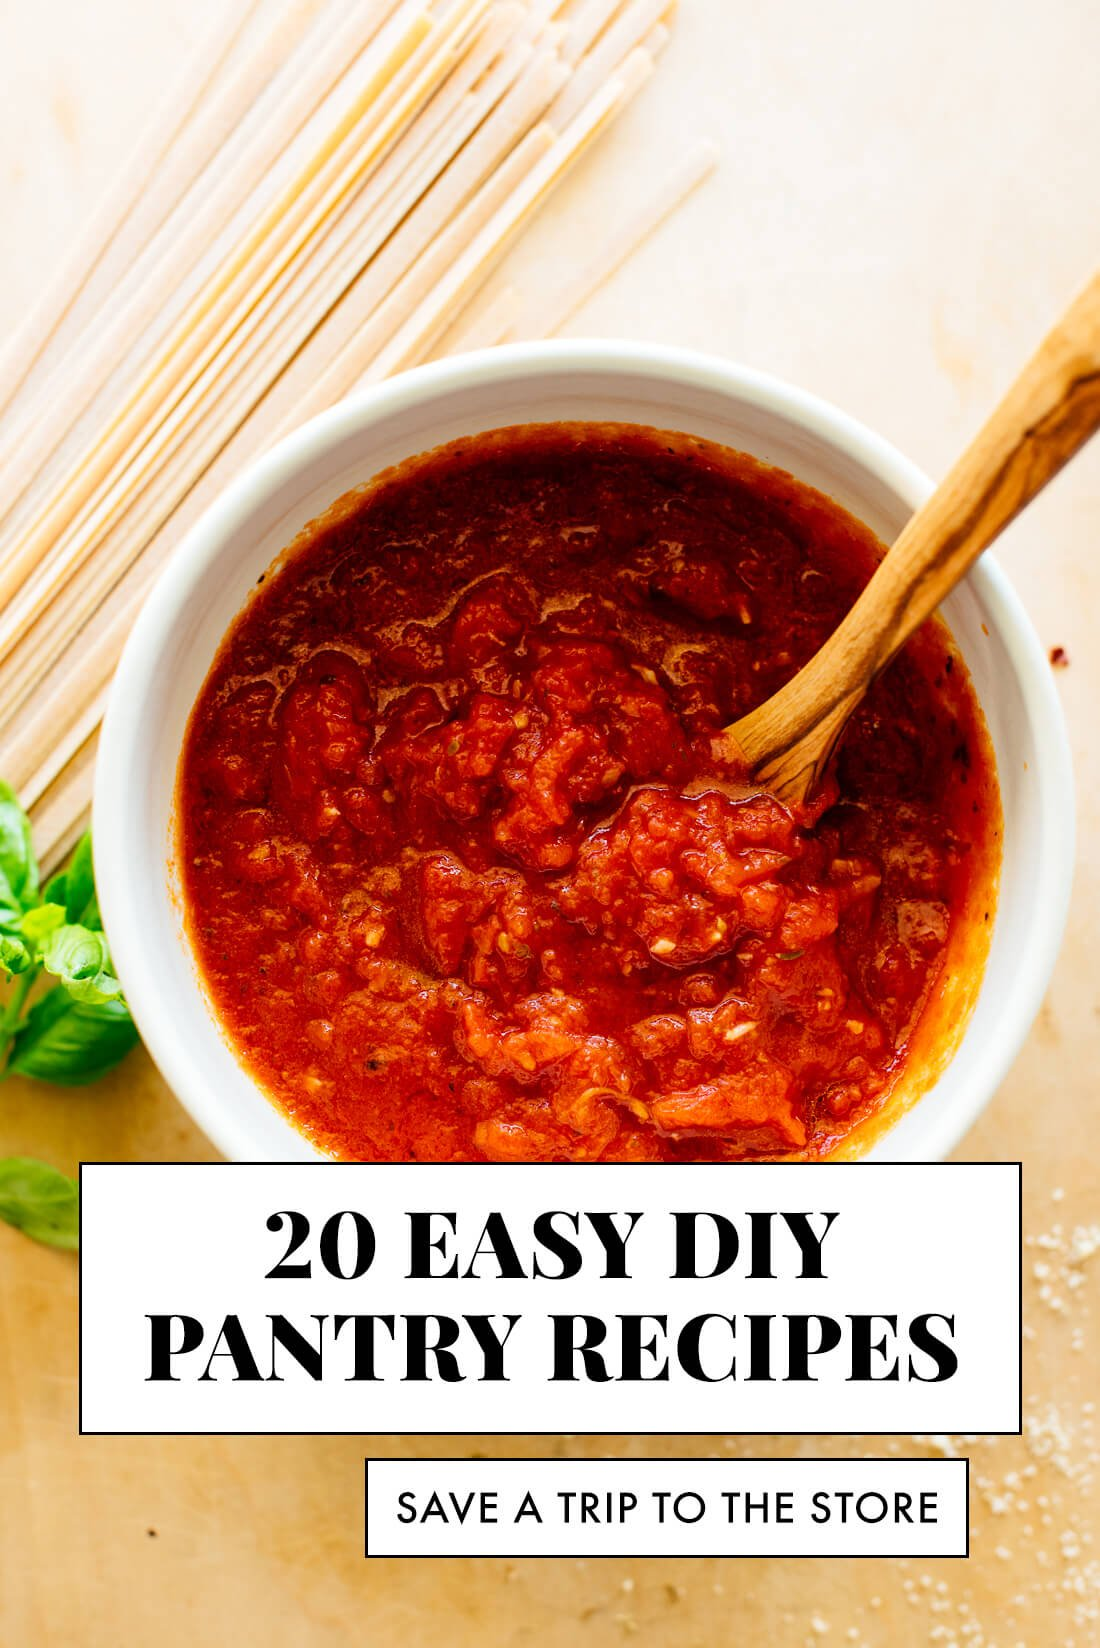 20 Diy Pantry Recipes Cookie And Kate